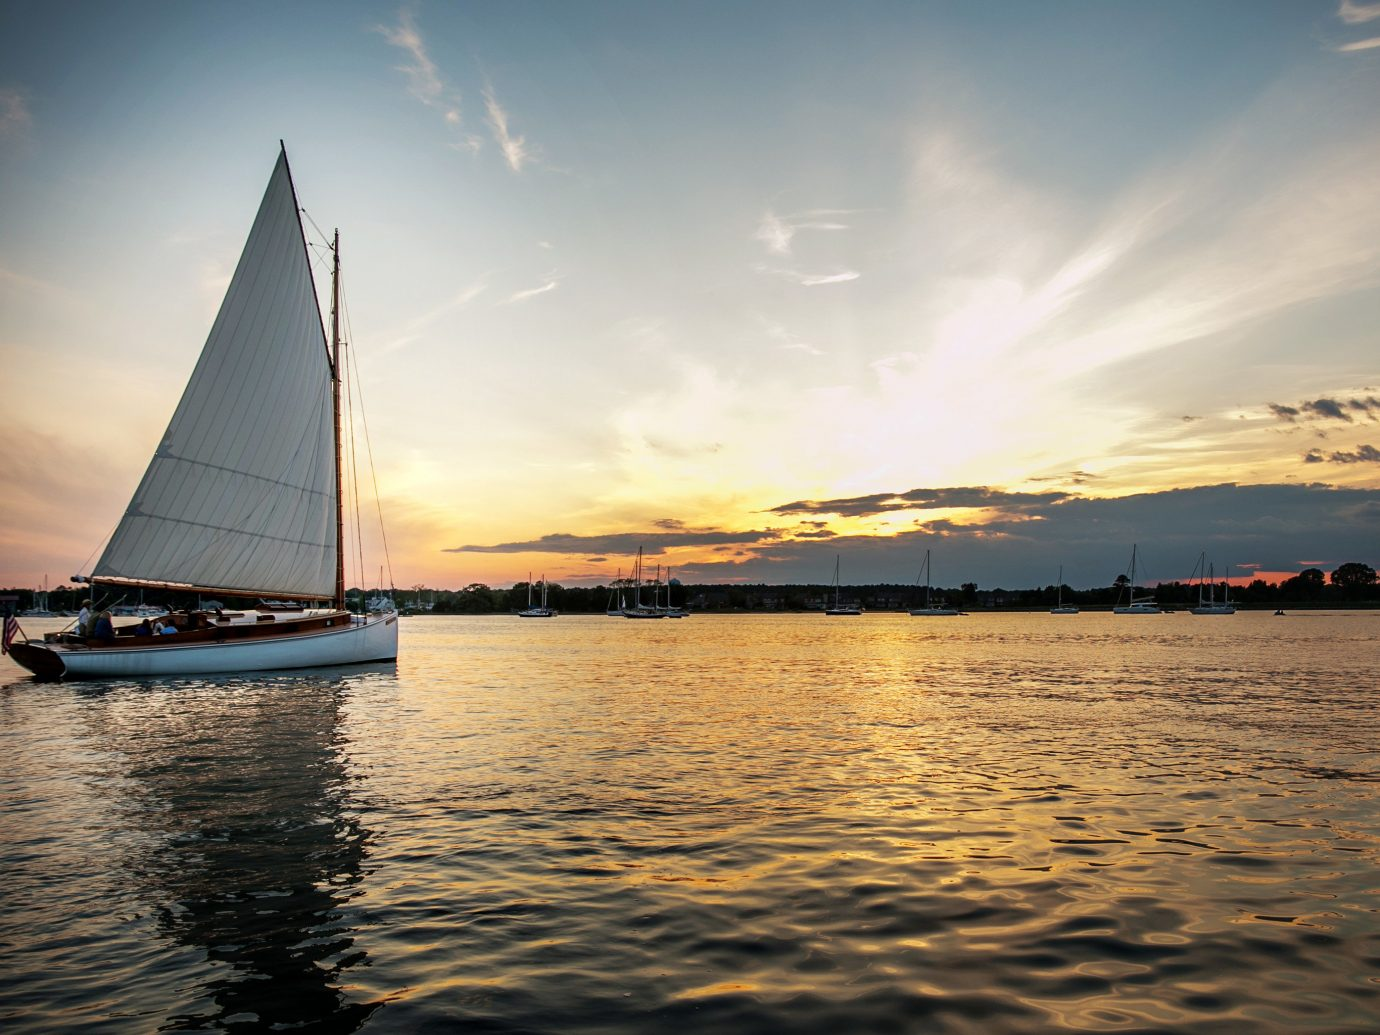 Ocean Romance ship Sunset Trip Ideas Weekend Getaways water sky outdoor Boat sailing vessel waterway watercraft reflection transport sail calm Sea cloud sailboat River horizon sailing evening morning dusk sailing ship Lake sunlight sunrise landscape wave channel dawn boating day distance